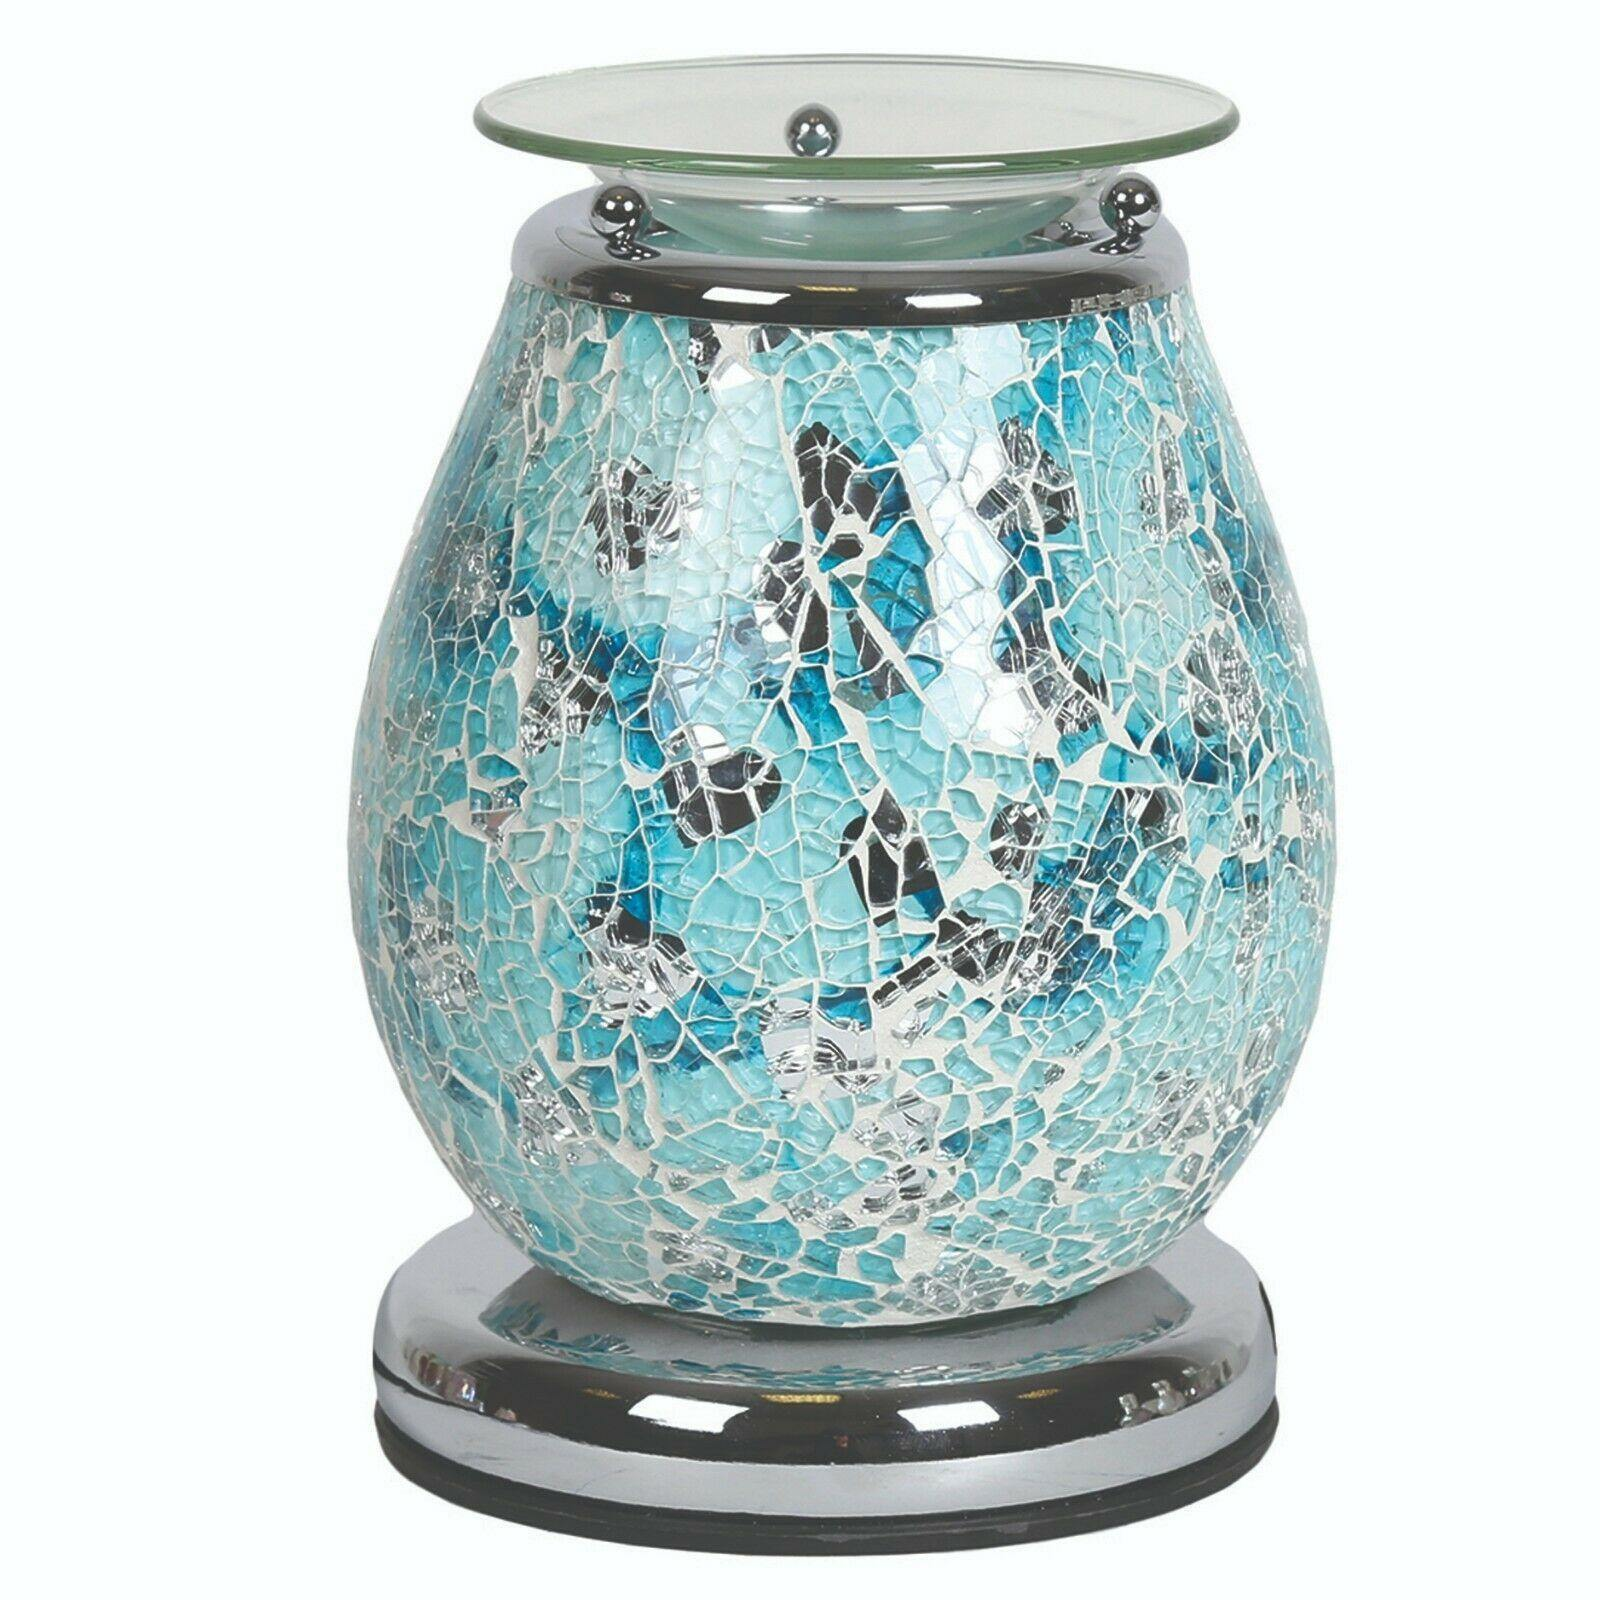 Aroma Accessories Artemis Mosaic Touch Electric Wax Melt Warmer - TOSYS Candles and Gifts